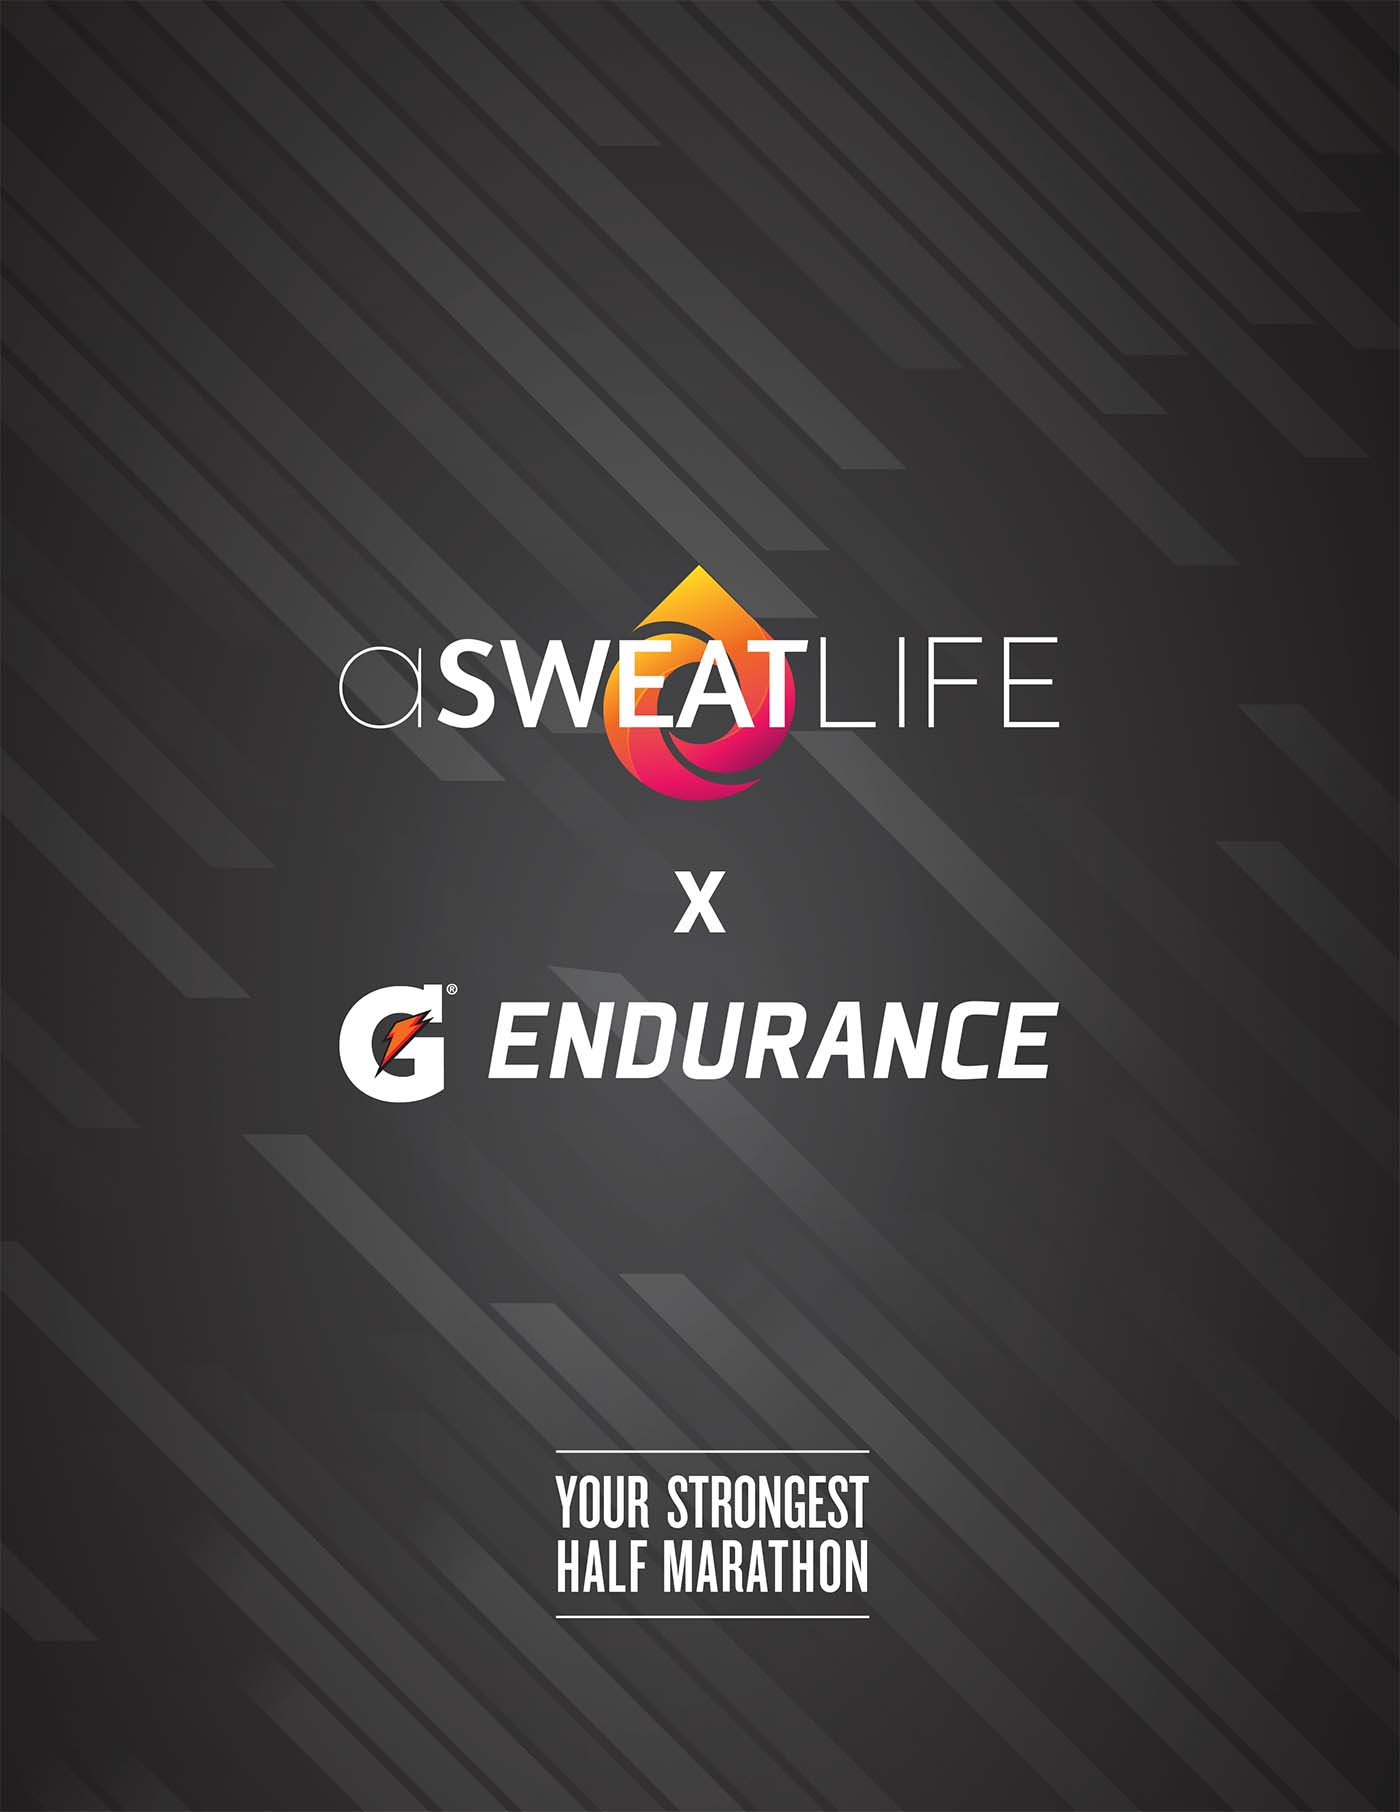 https://asweatlife.com/wp-content/uploads/2018/03/aSweatLife-and-Gatorade-Endurance-Half-Marathon-Training-Plan.pdf